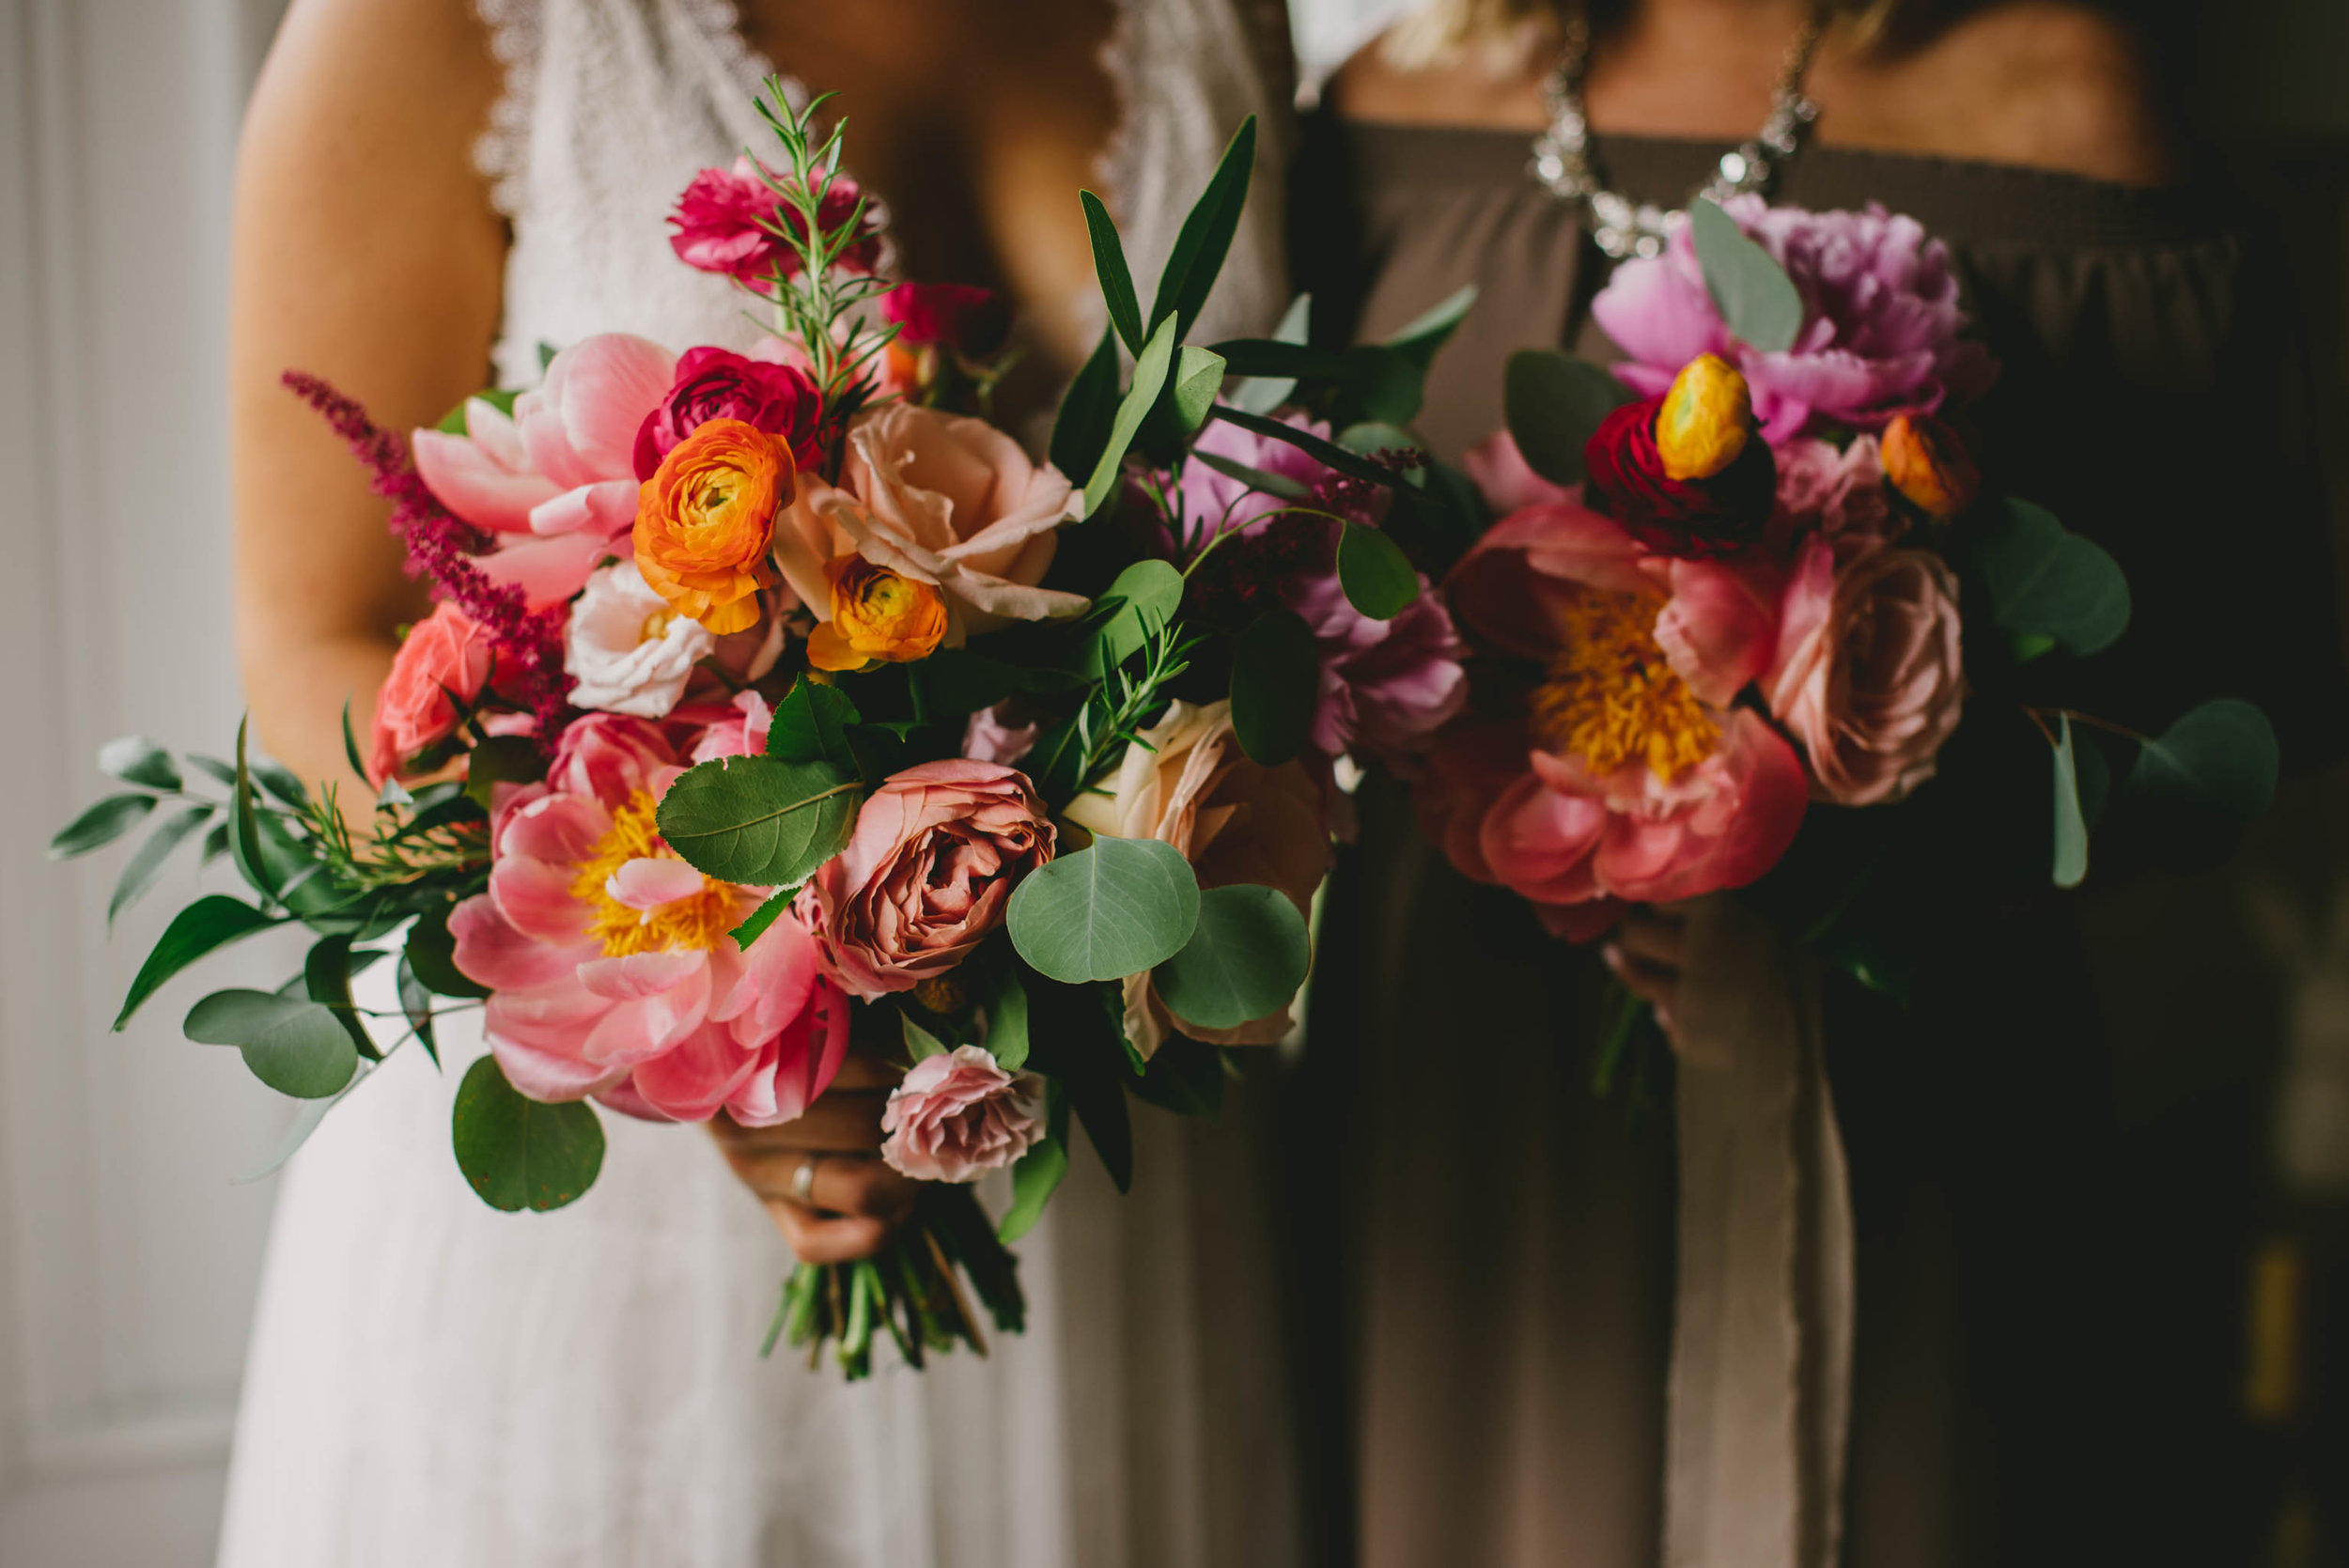 mims-house-wedding-brides-bouquet-details.jpg